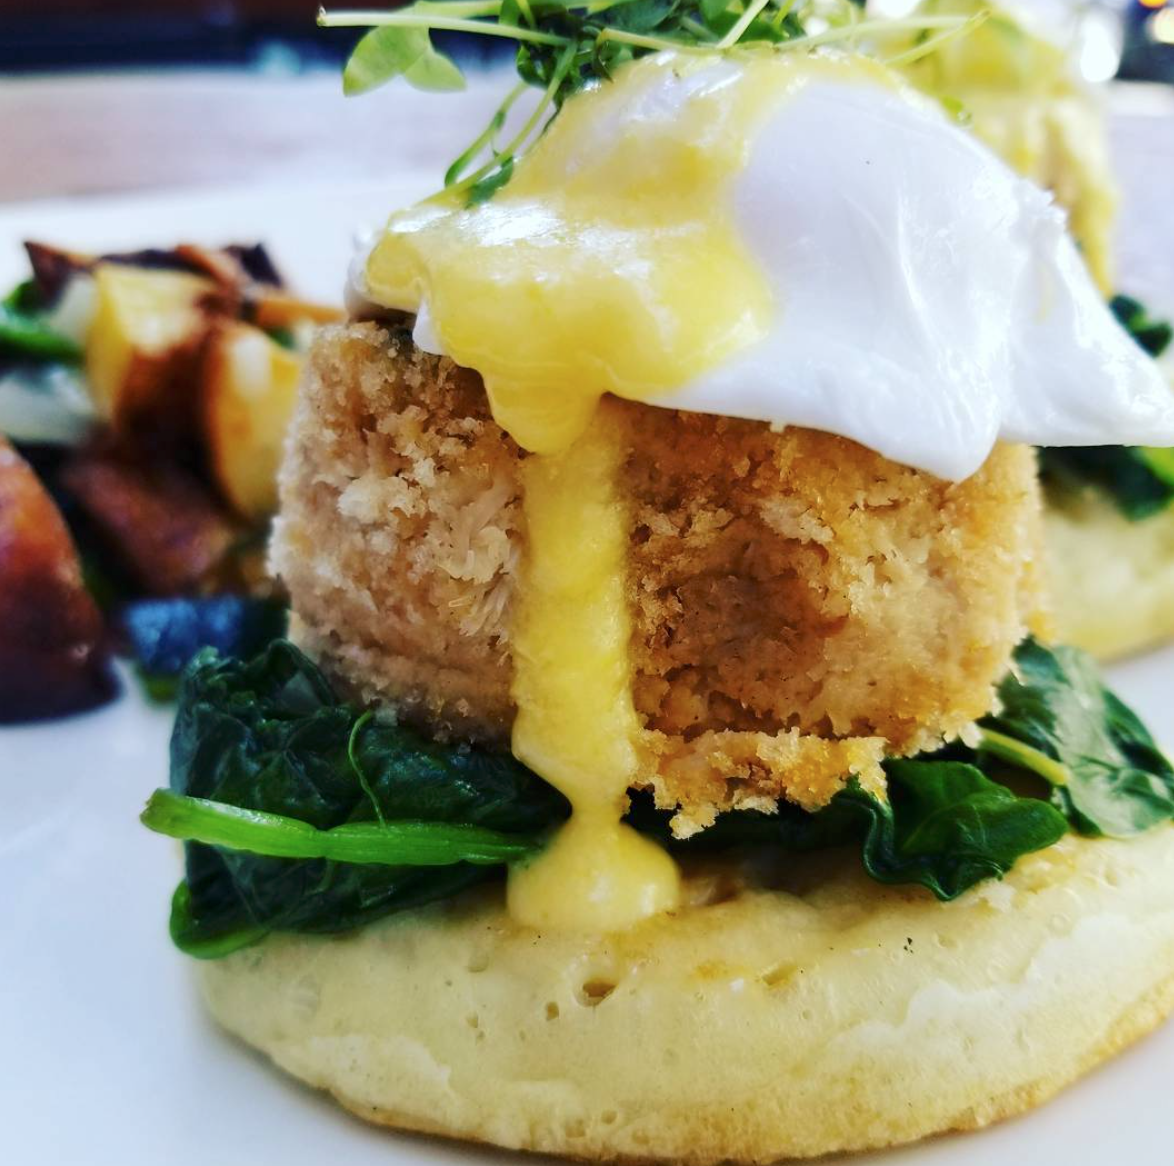 State & Allen's Crab Cake Benedict - Delicious Brunch Option in Dallas, Texas!